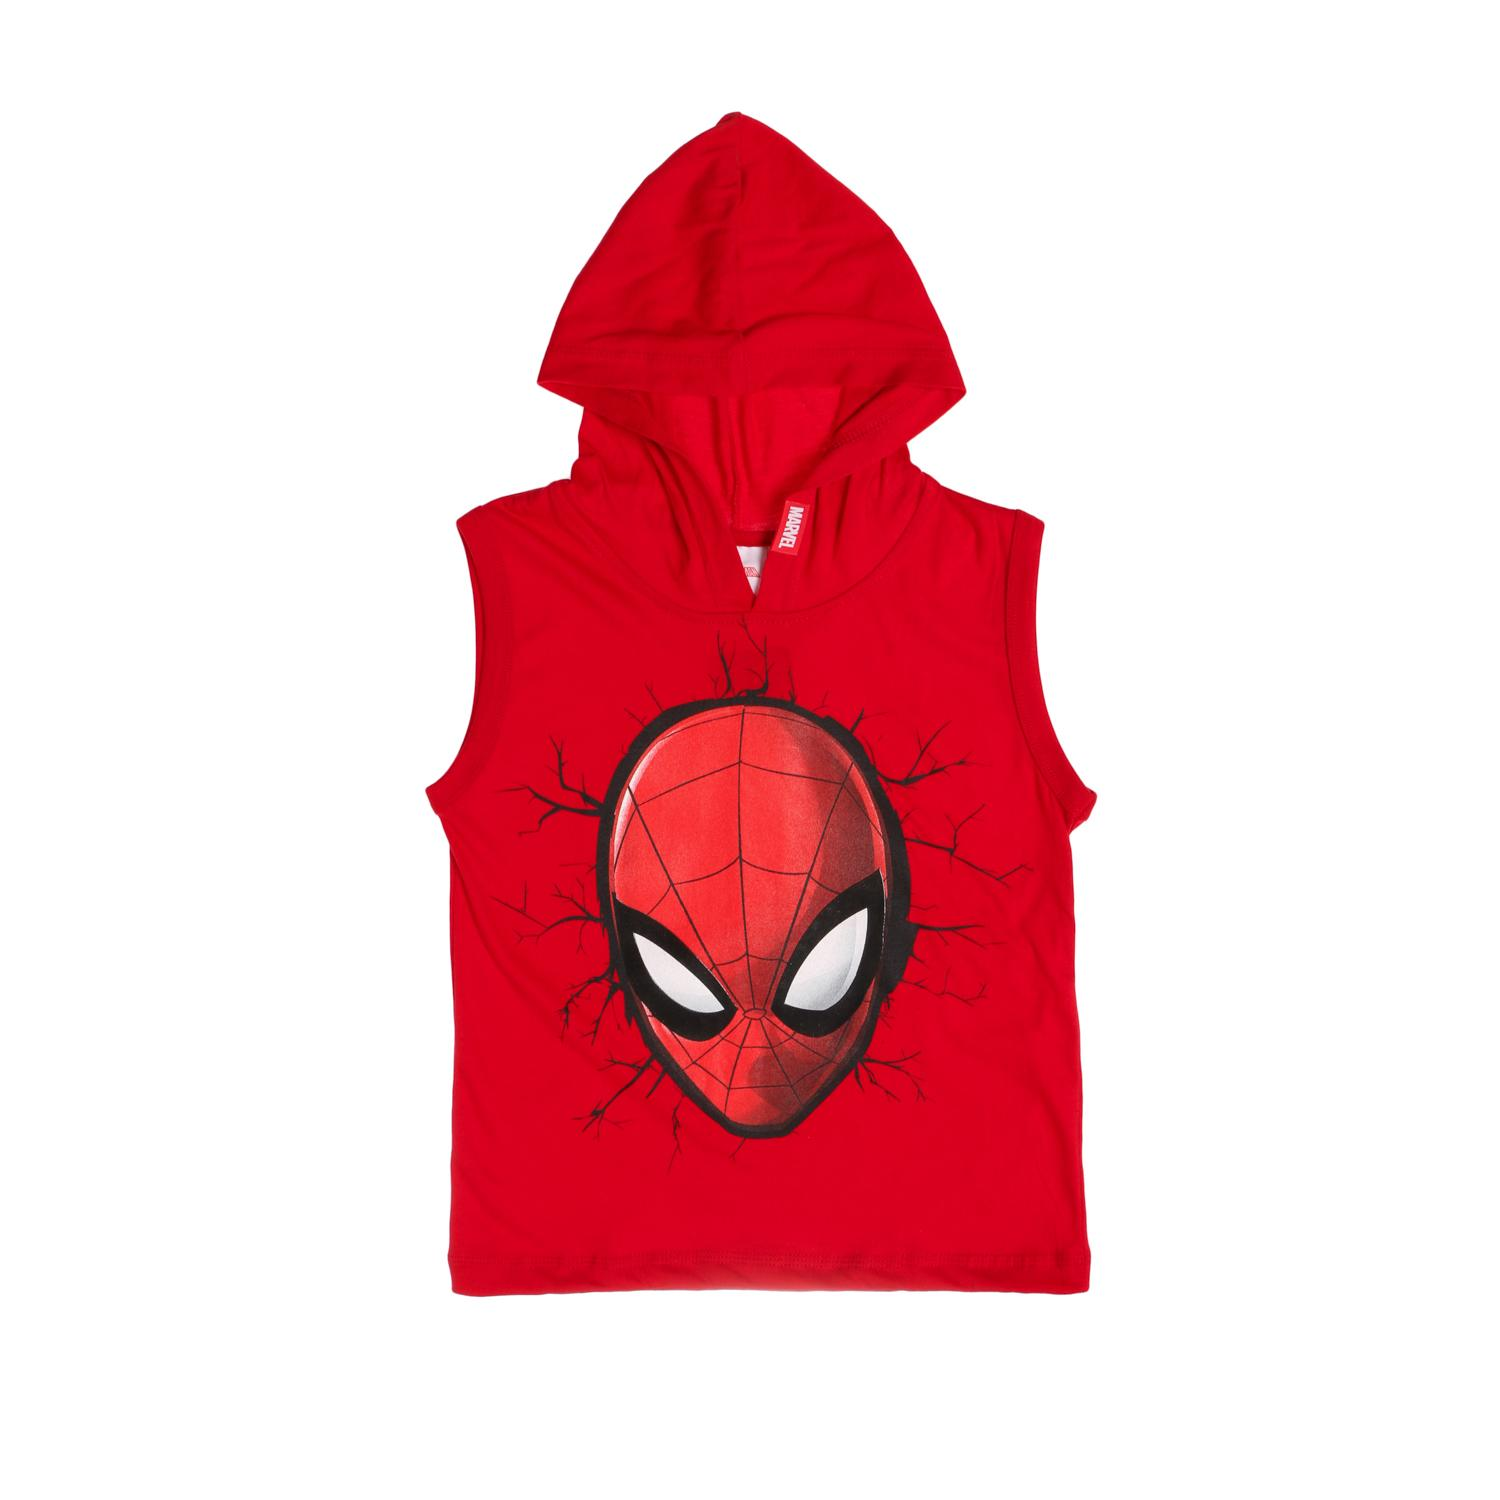 0ffe2645354916 Marvel Spider-Man Boys Cracked Wink Head Hooded Muscle Tee in Red